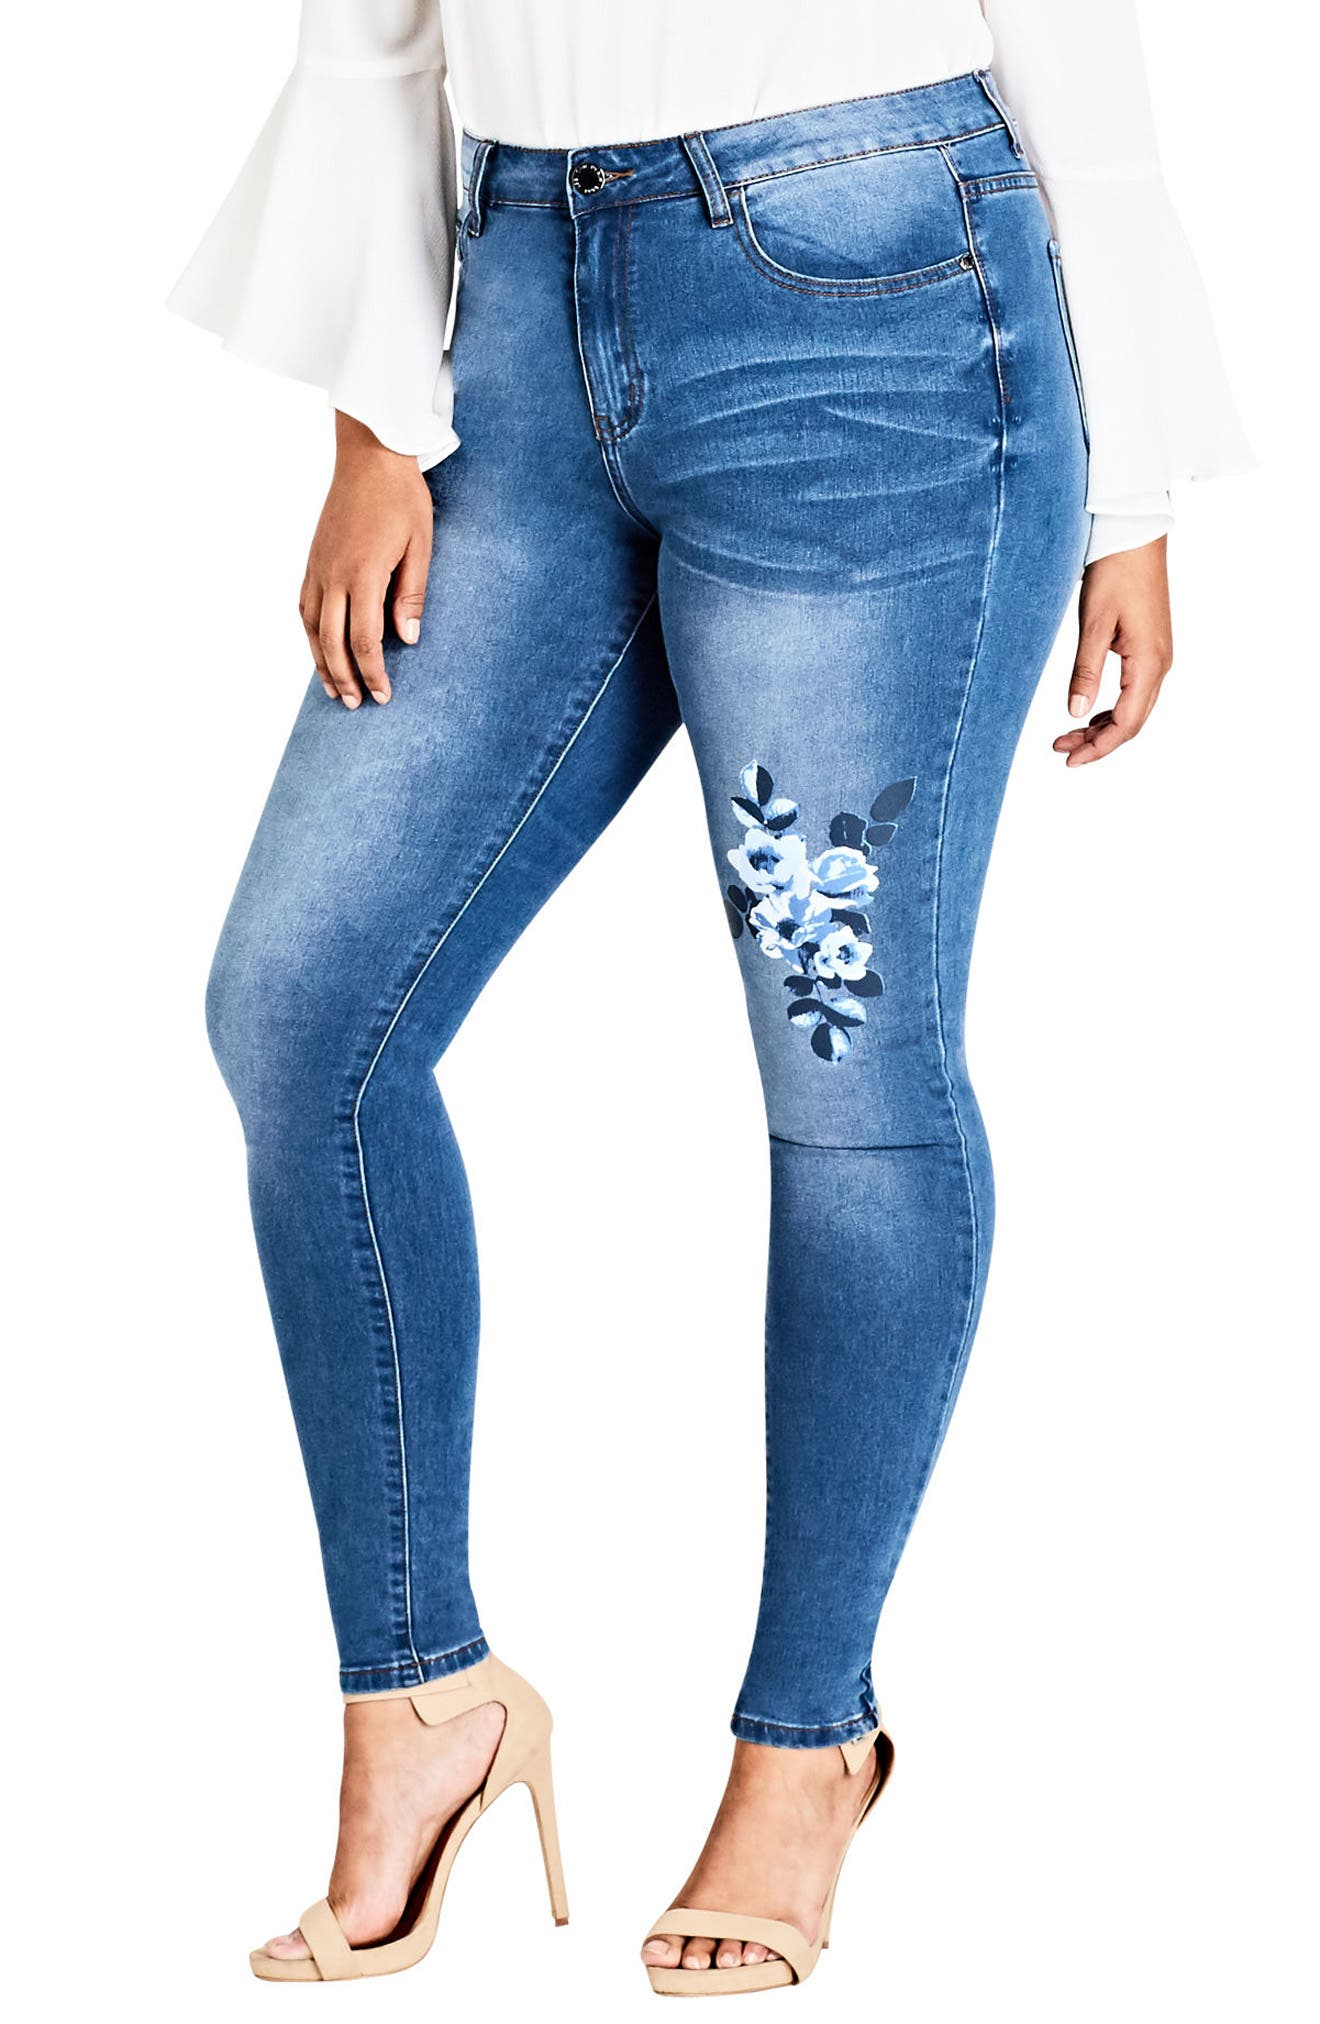 Alternate Image 1 Selected - City Chic Harley Posey Skinny Jeans (Plus Size)